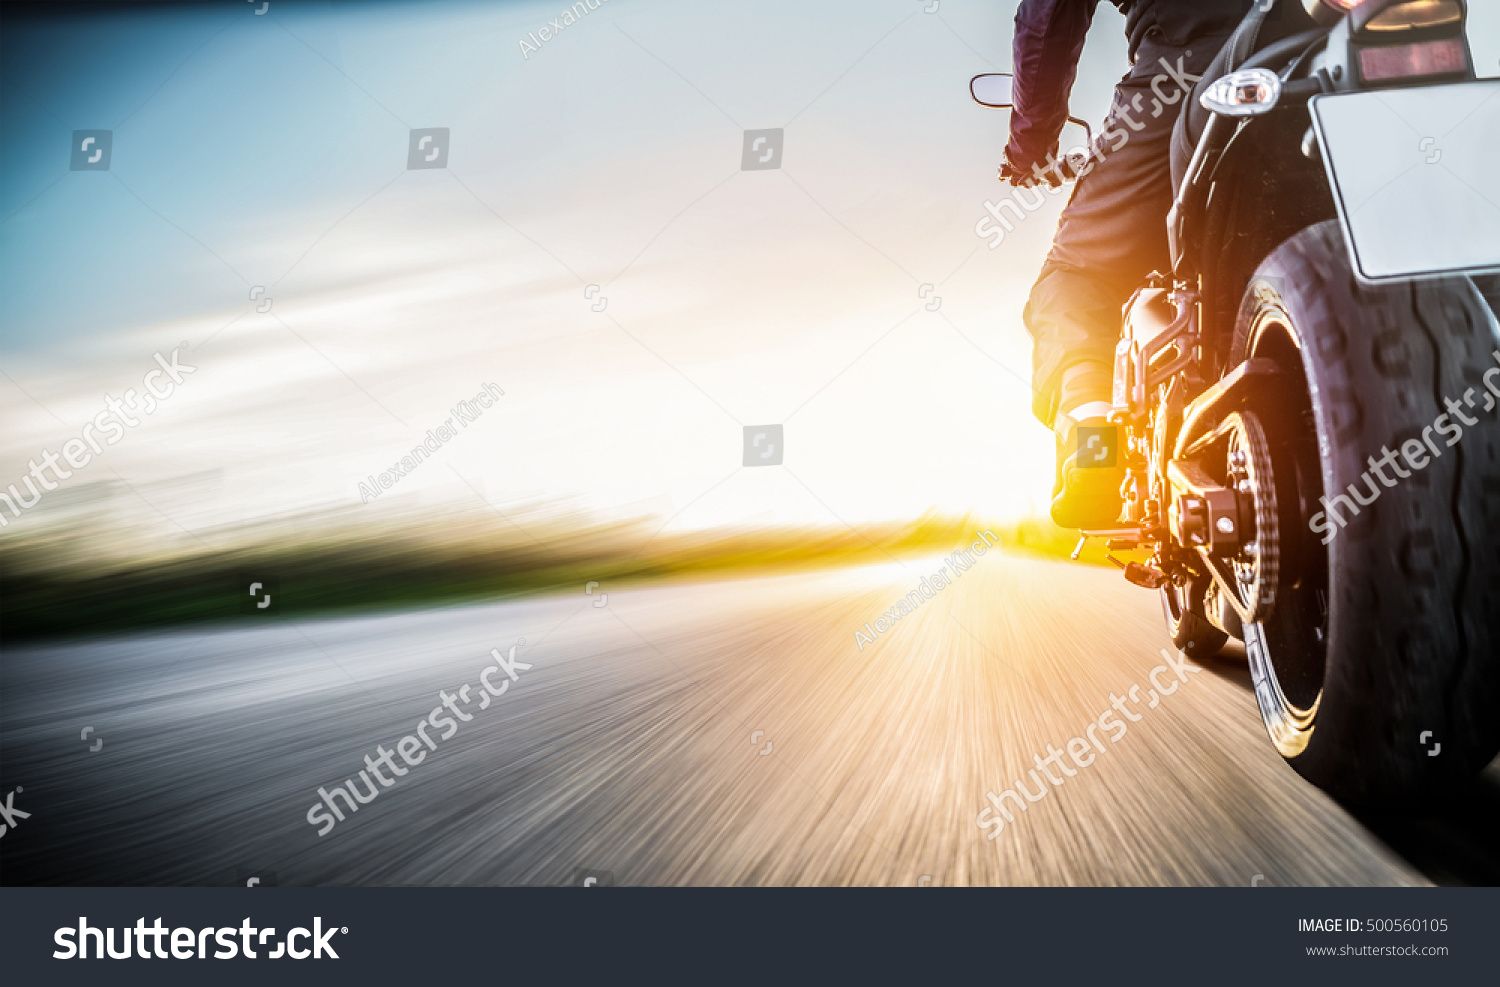 motorbike on the road riding. having fun driving the empty road on a motorcycle tour journey. copyspace for your individual text. #500560105